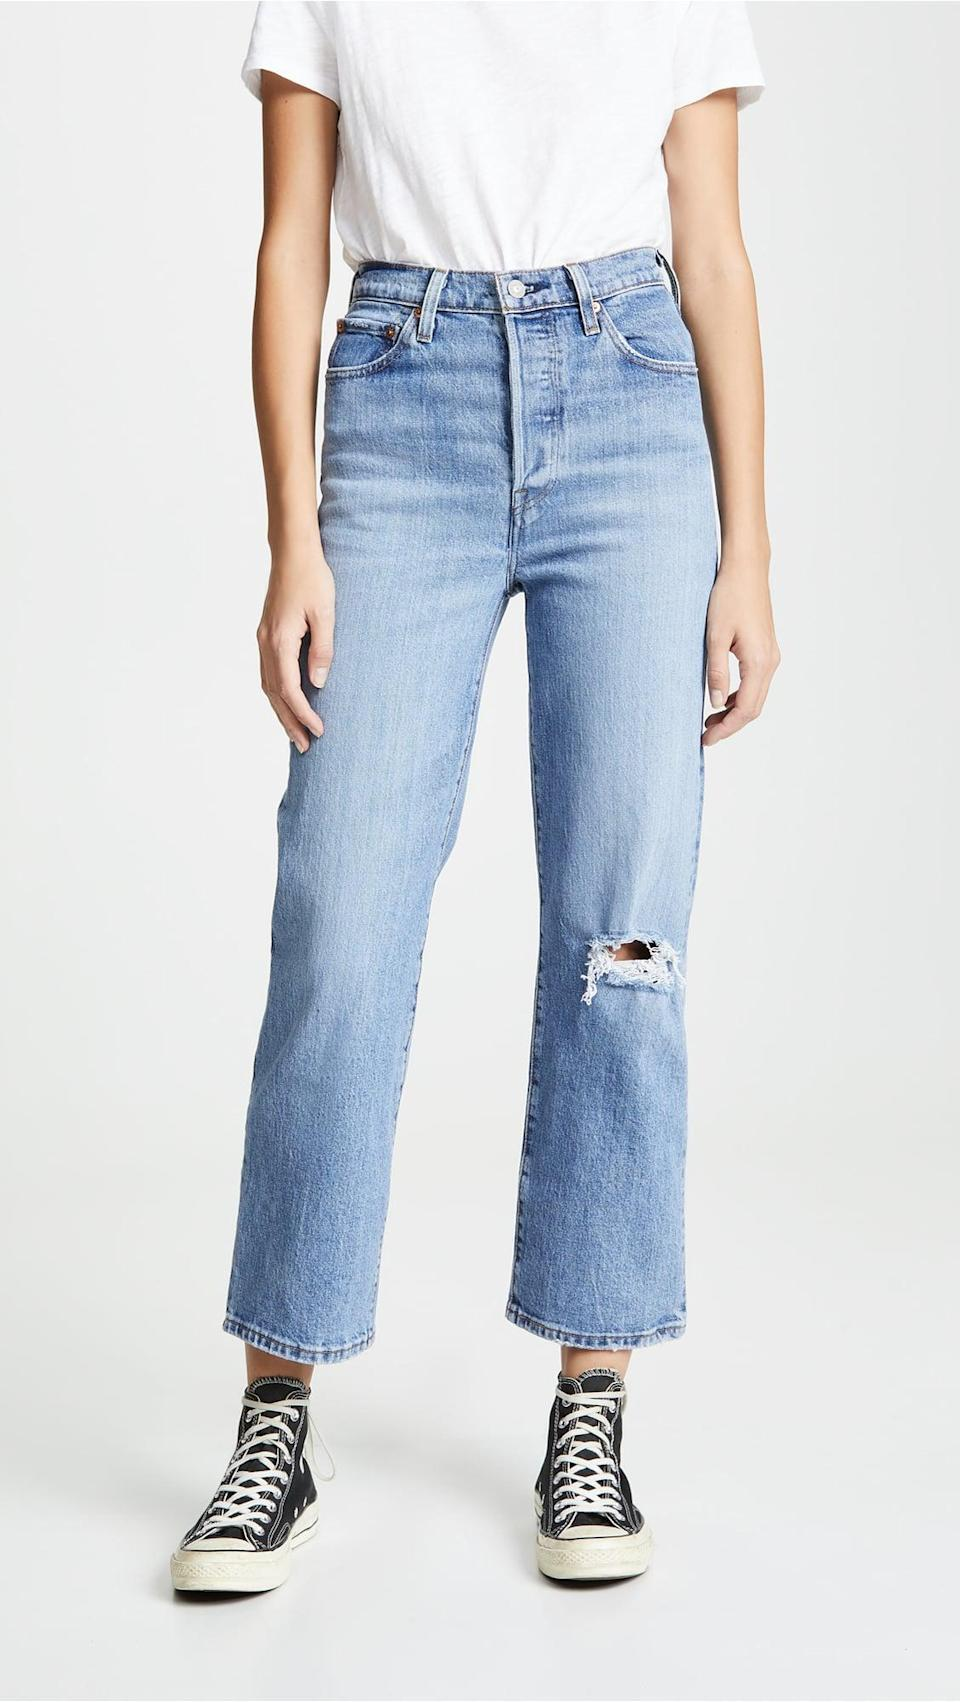 <p>Stay comfortable and look chic in these <span>Levi's Ribcage Super High Rise Jeans</span> ($98). These are fitted through the hip but relaxed in the leg.</p>